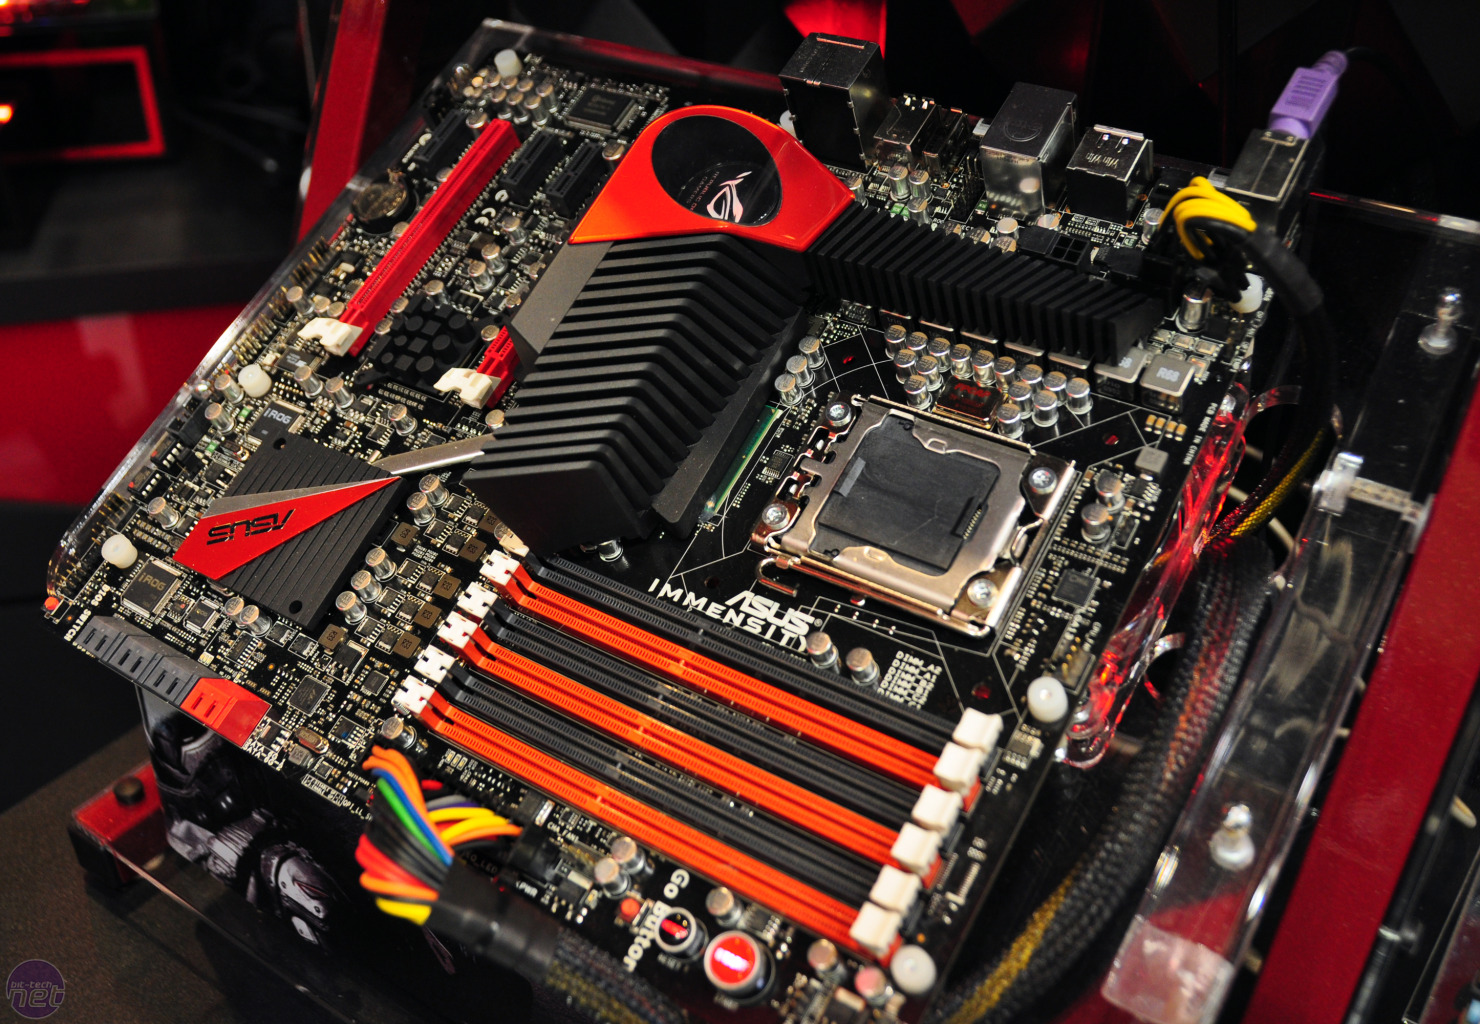 http://images.bit-tech.net/content_images/2010/06/asus-immensity-board-with-on-board-hd-5770/asus-immensity-1-vlarge.jpg